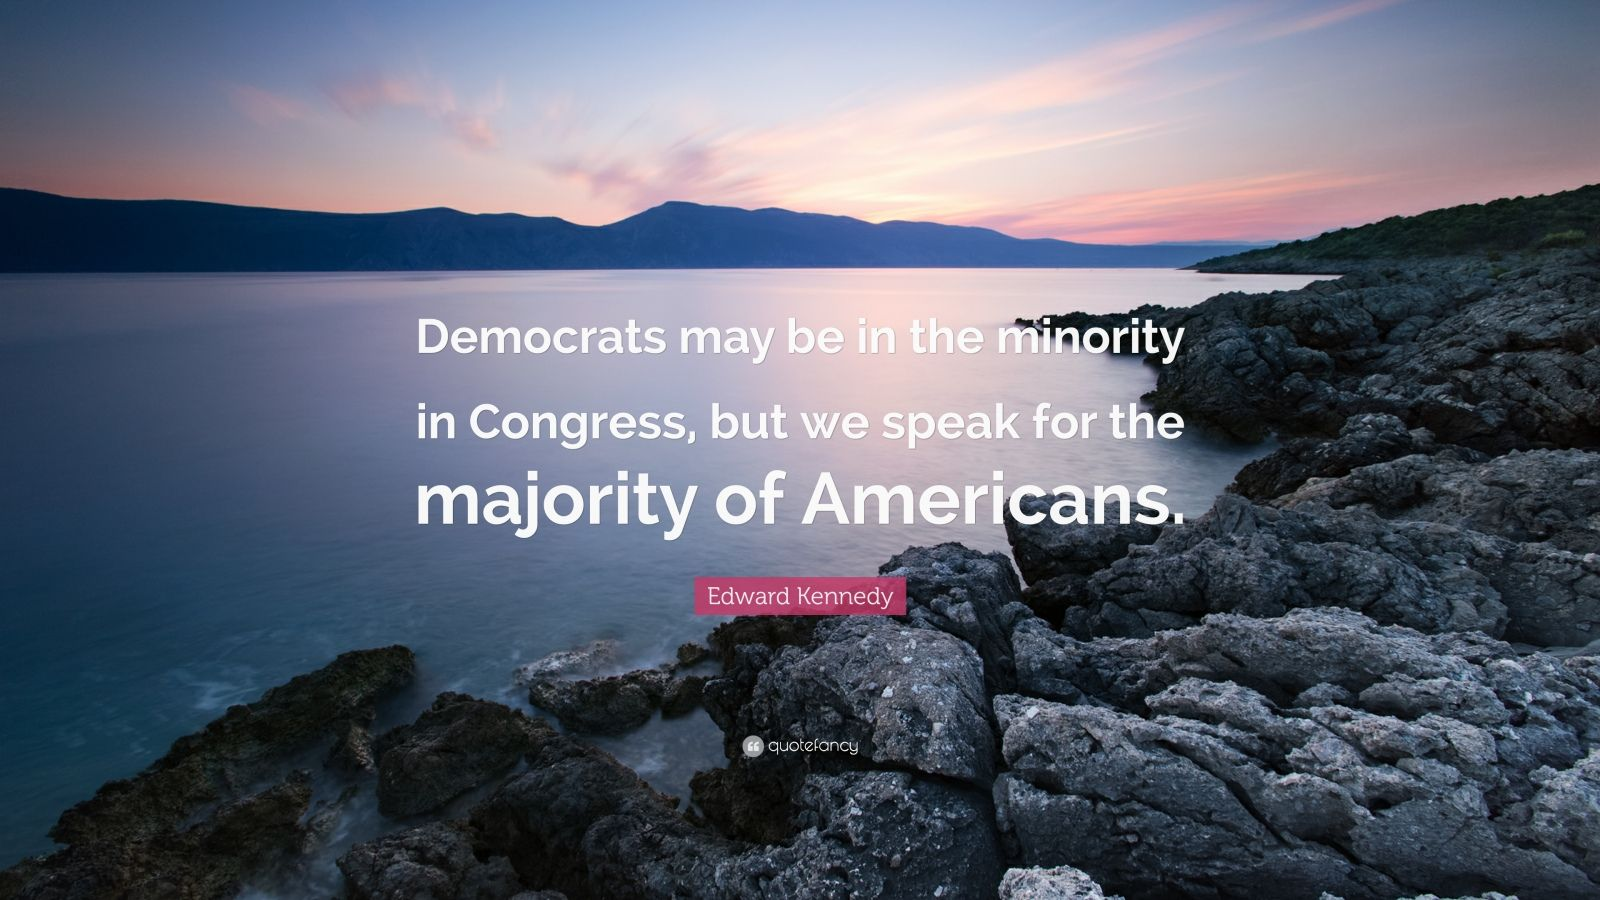 """Edward Kennedy Quote: """"Democrats may be in the minority in Congress, but we speak for the majority of Americans."""""""